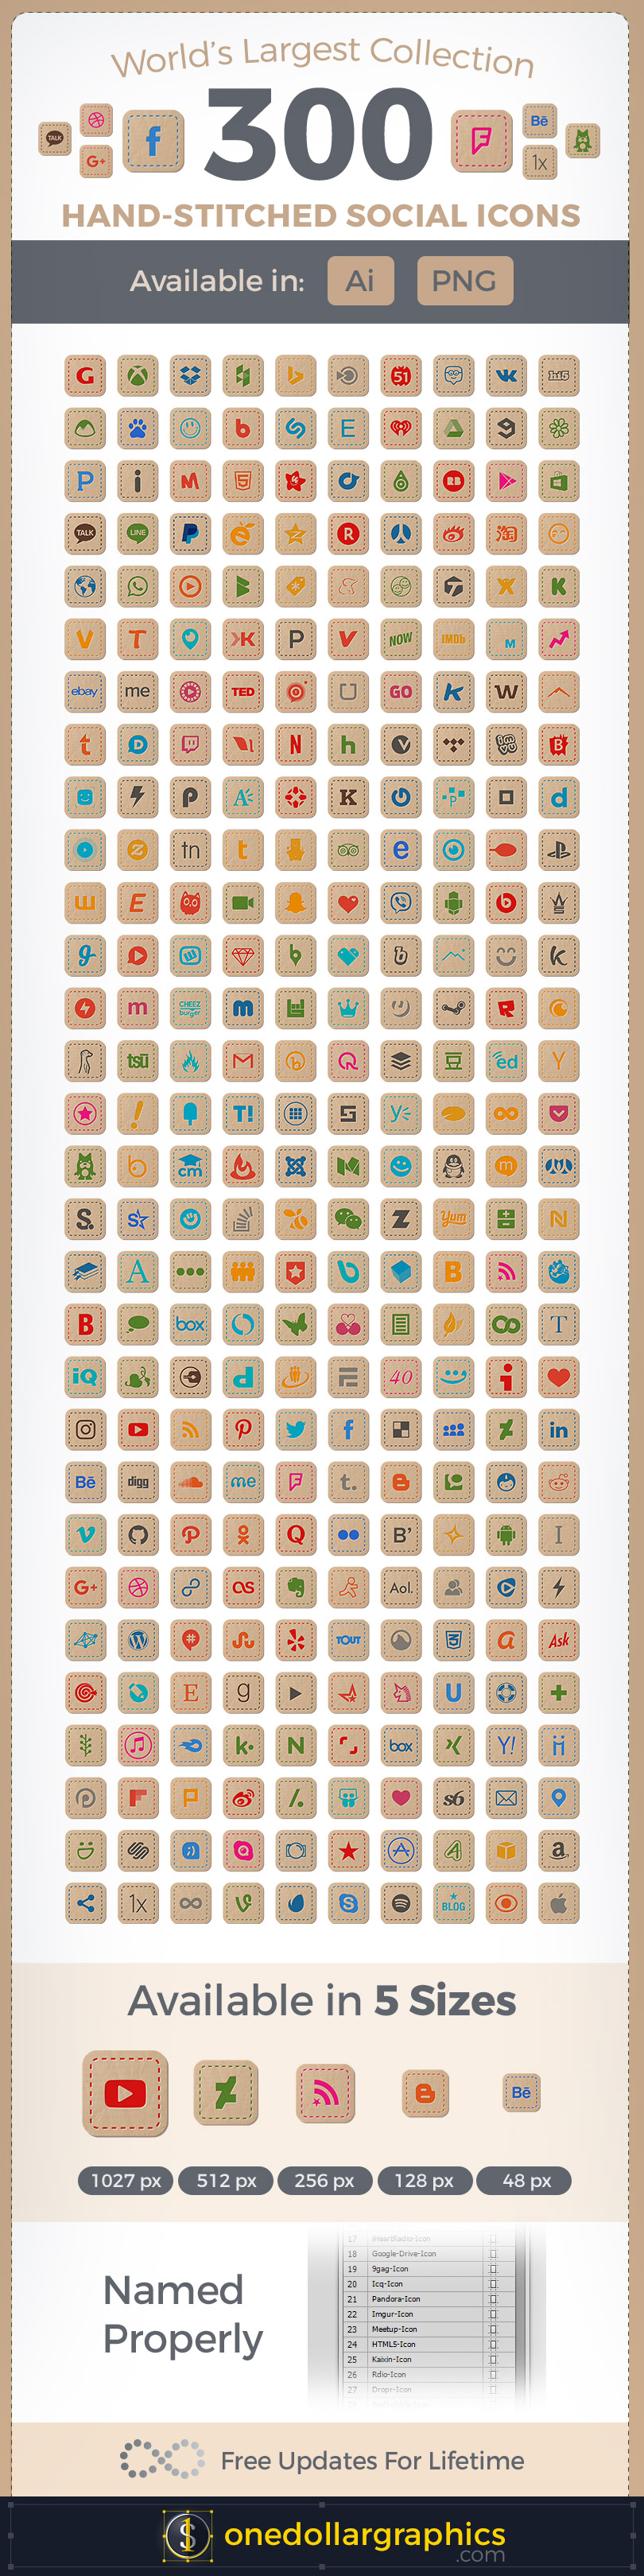 300-Hand-Stitched-Premium-Social-Media-Icons-For-Art-&-Craft-Websites